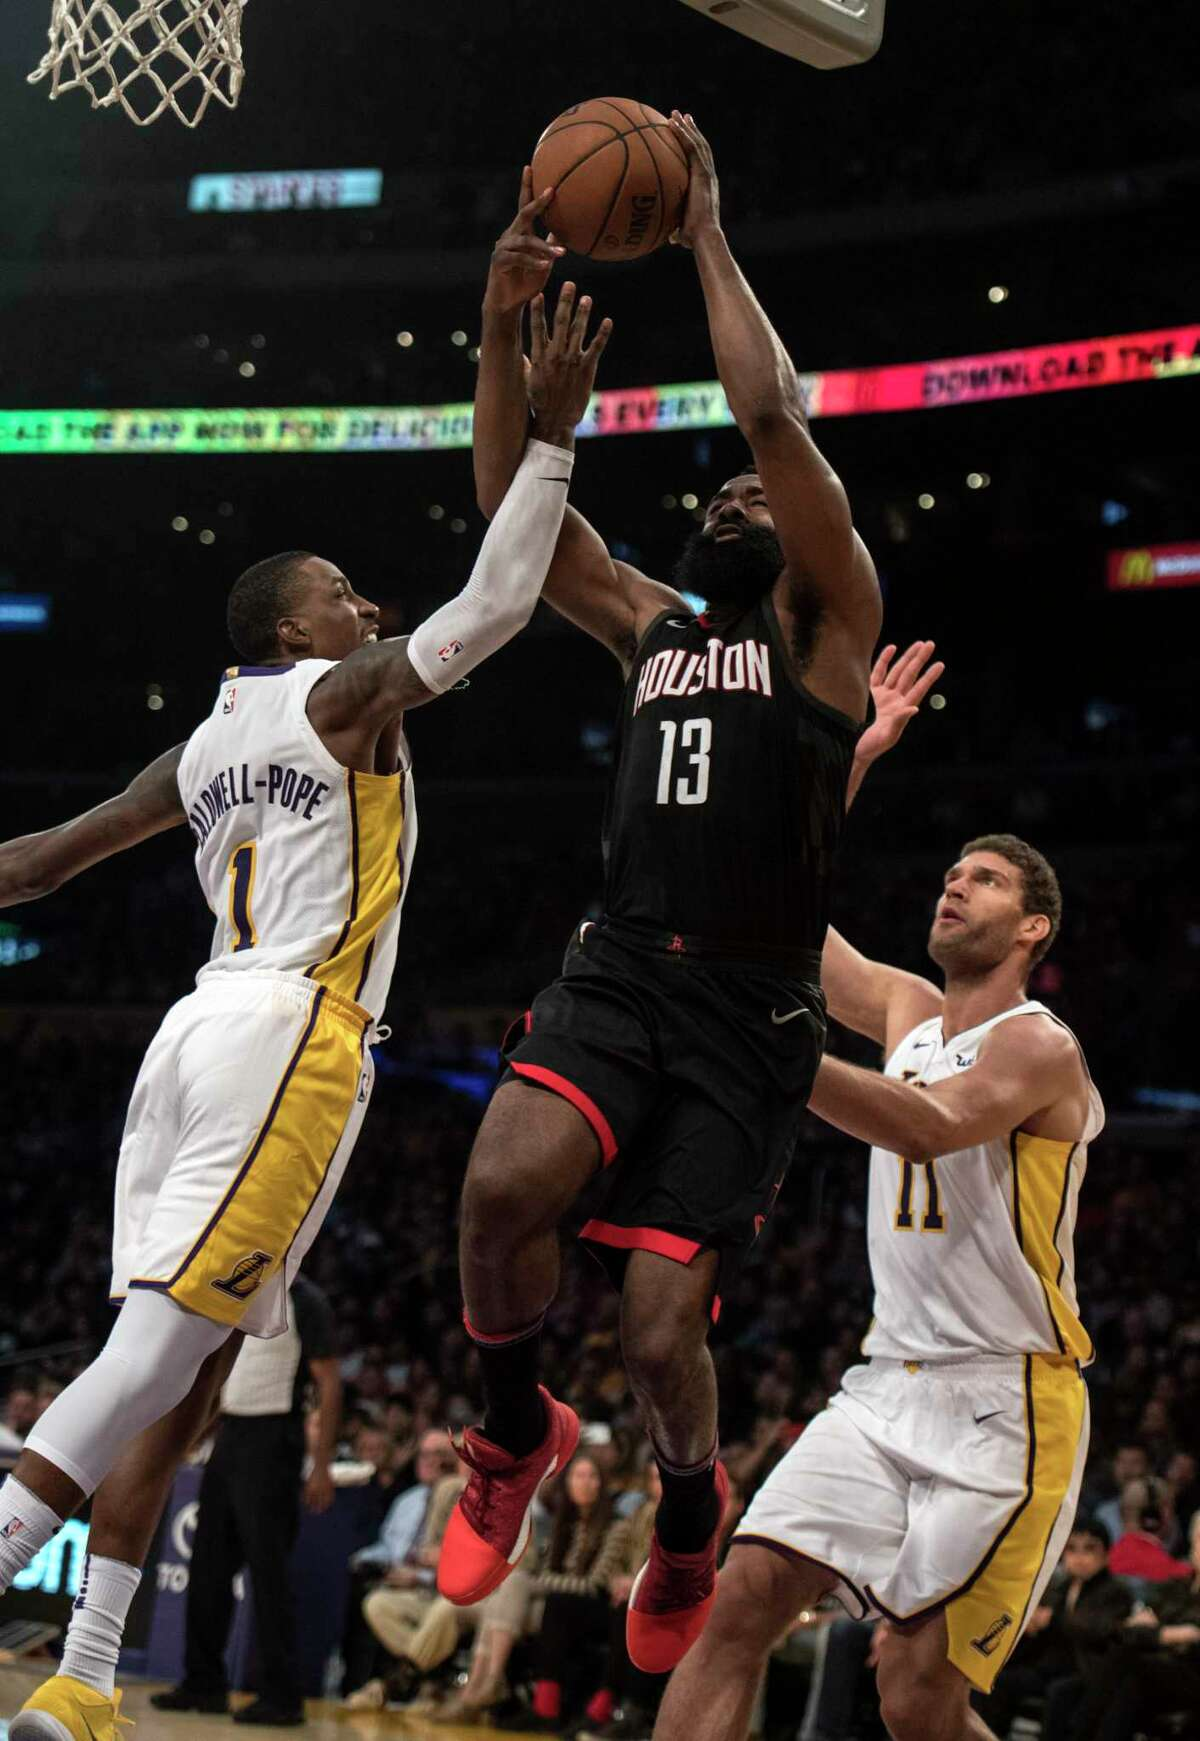 Houston Rockets guard James Harden (13) shoots under pressure as Los Angeles Lakers guard Kentavious Caldwell-Pope, left, and center Brook Lopez (11) defend him during the first half of an NBA basketball game Sunday, Dec. 3, 2017, in Los Angeles. (AP Photo/Kyusung Gong)